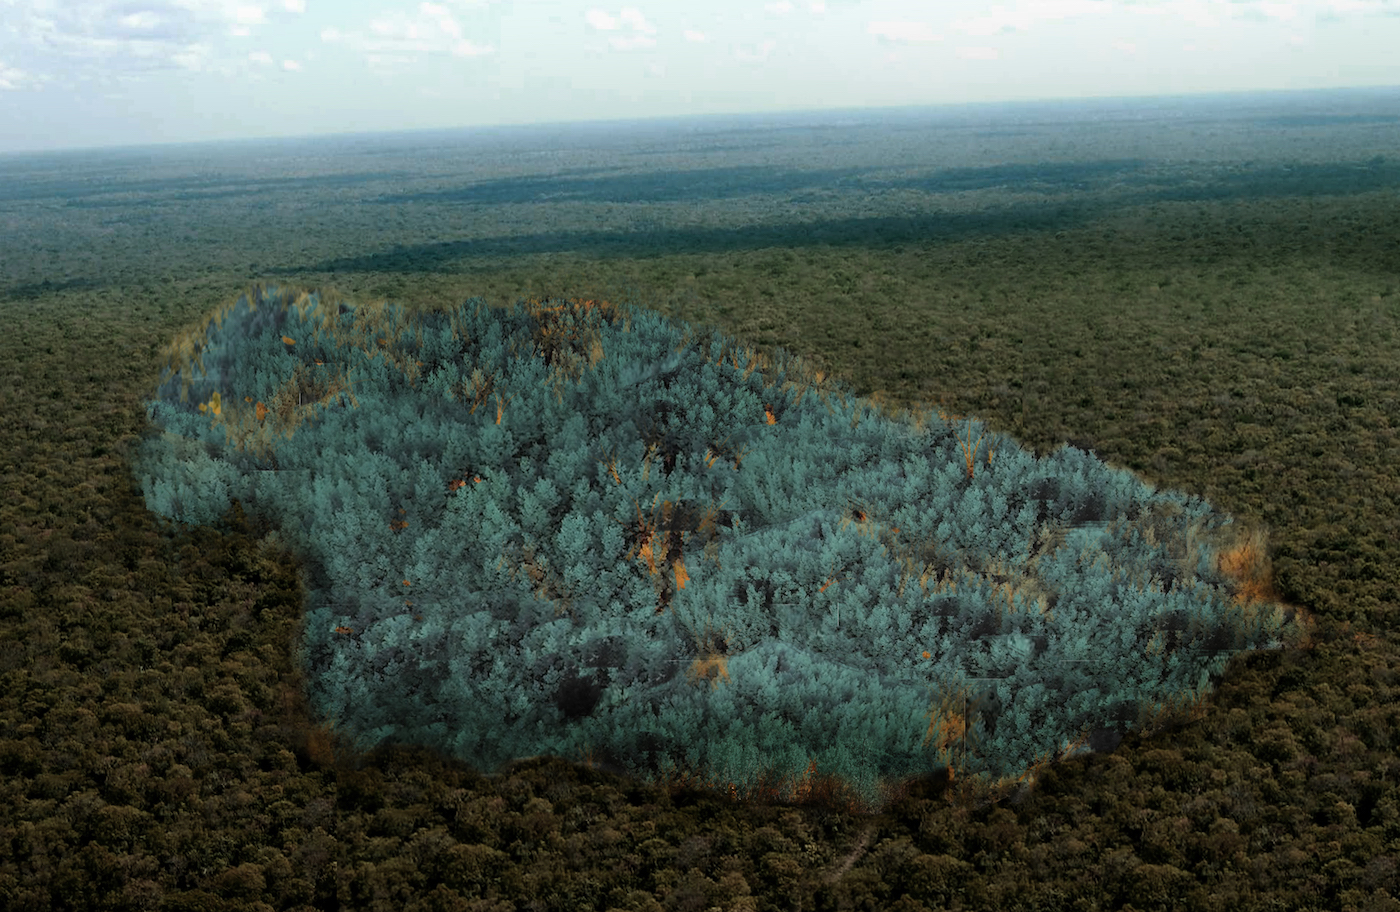 """Stéfane Perraud and Aram Kebabdjian's """"La Zone Bleue"""" proposal for a genetically modified blue forest (courtesy Andra)"""